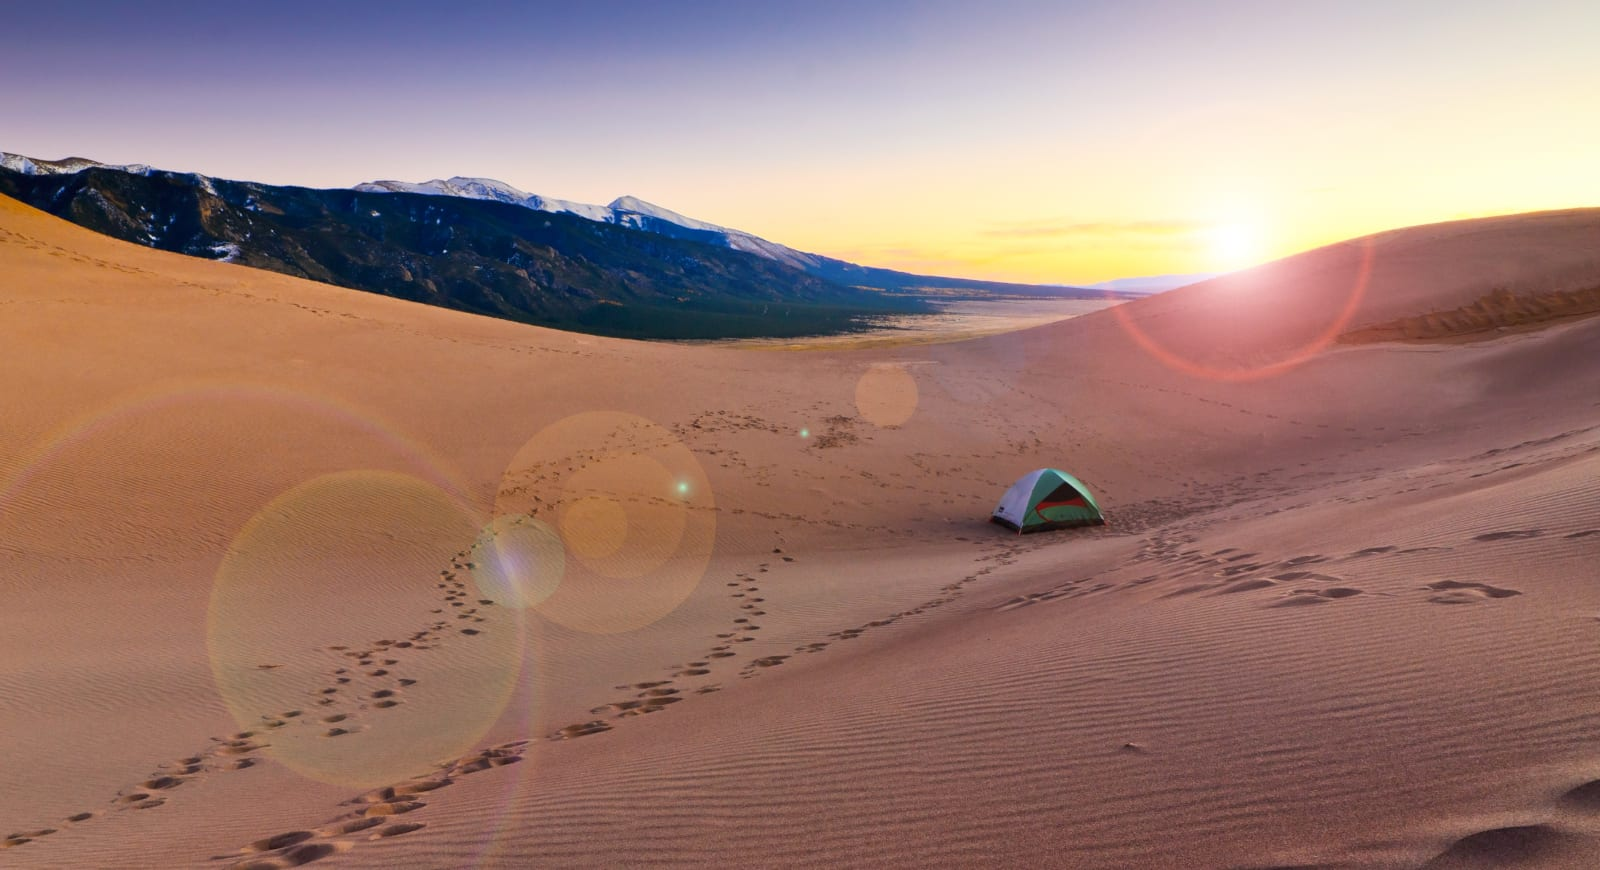 Backcountry Camping Hiking Colorado Sunset Dune Campsite